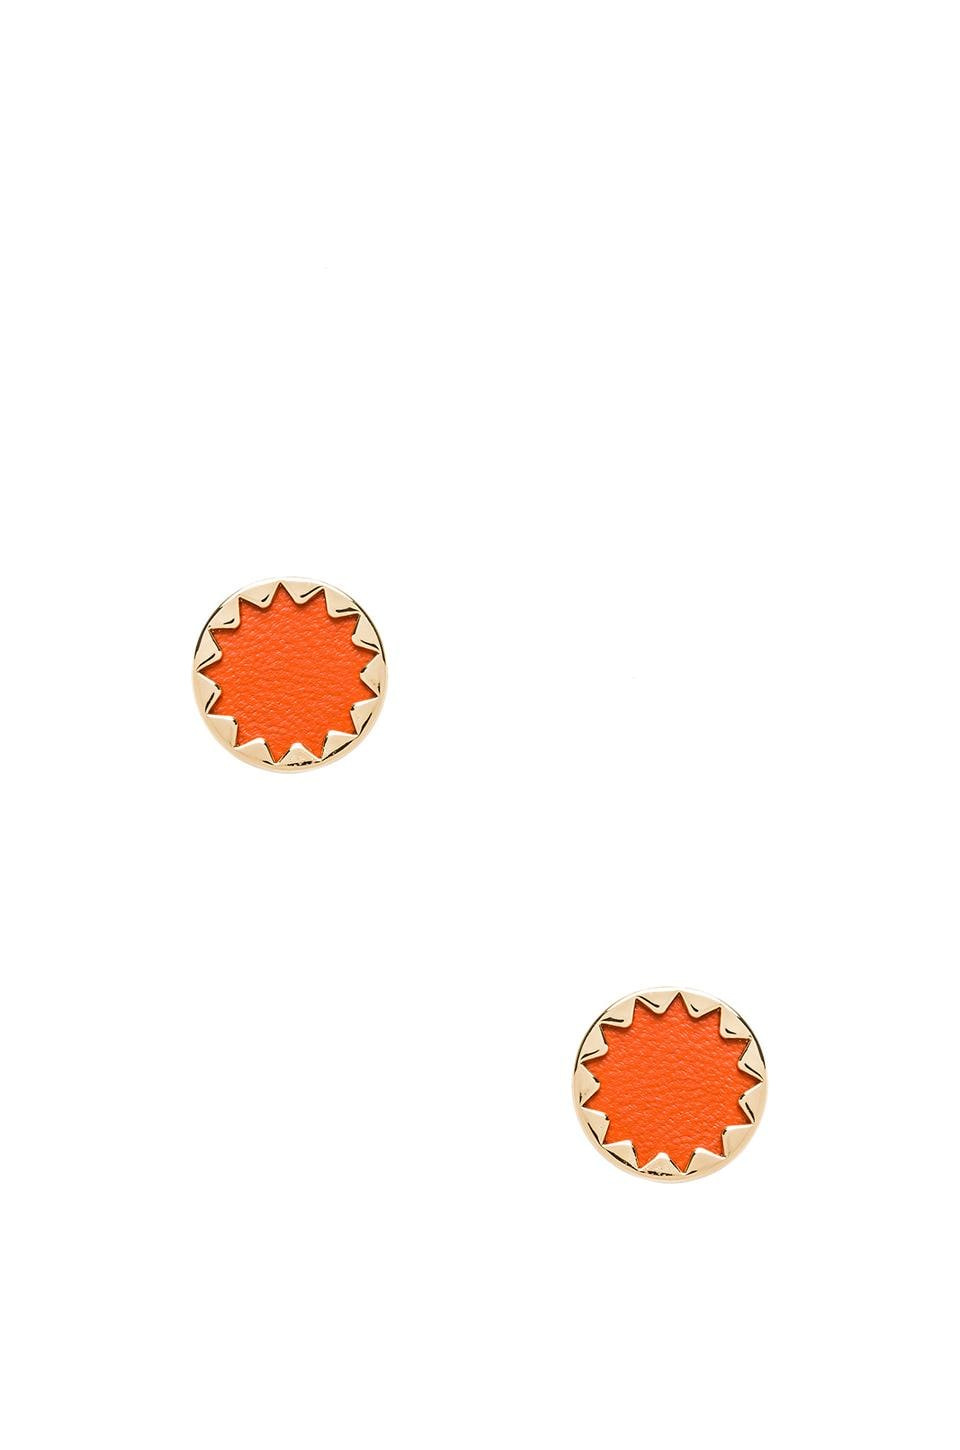 House of Harlow 1960 House of Harlow Sunburst Button Earrings in Coral